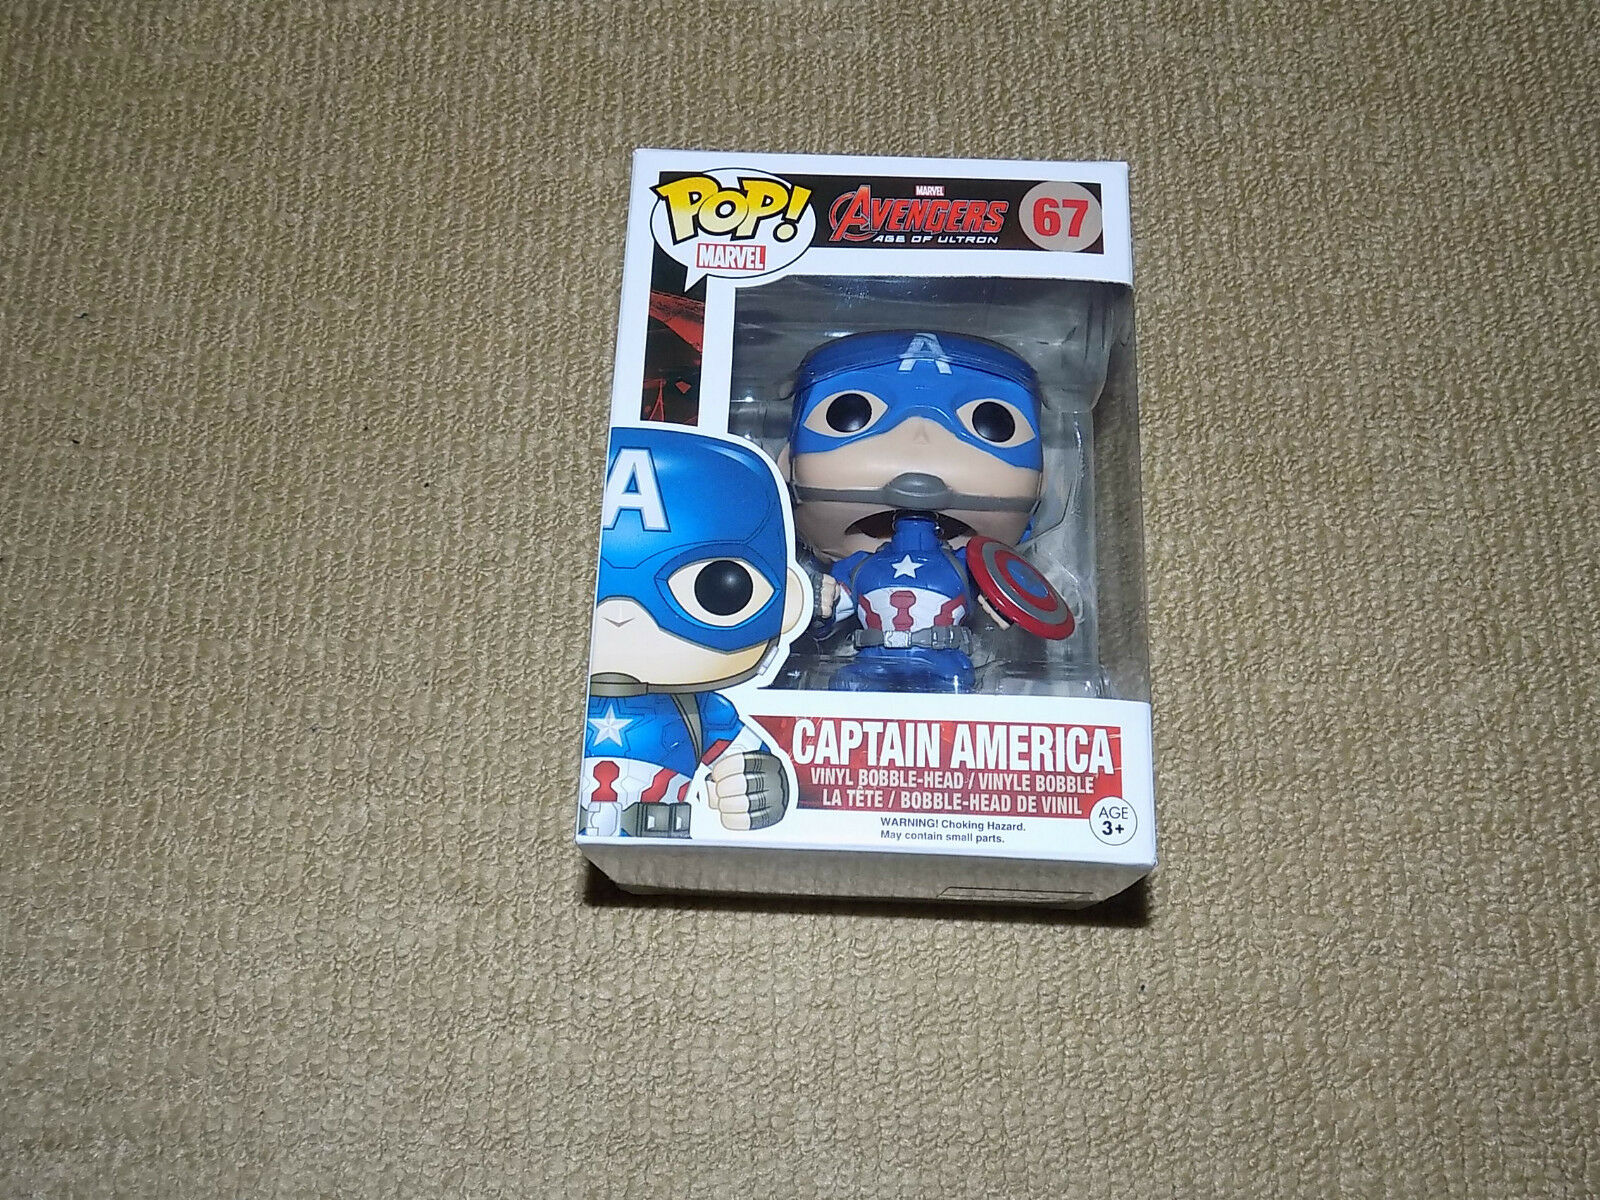 FUNKO POP CAPTAIN AMERICA, VAULTED AVENGERS AGE OF ULTRON, MARVEL FIGURE, NM